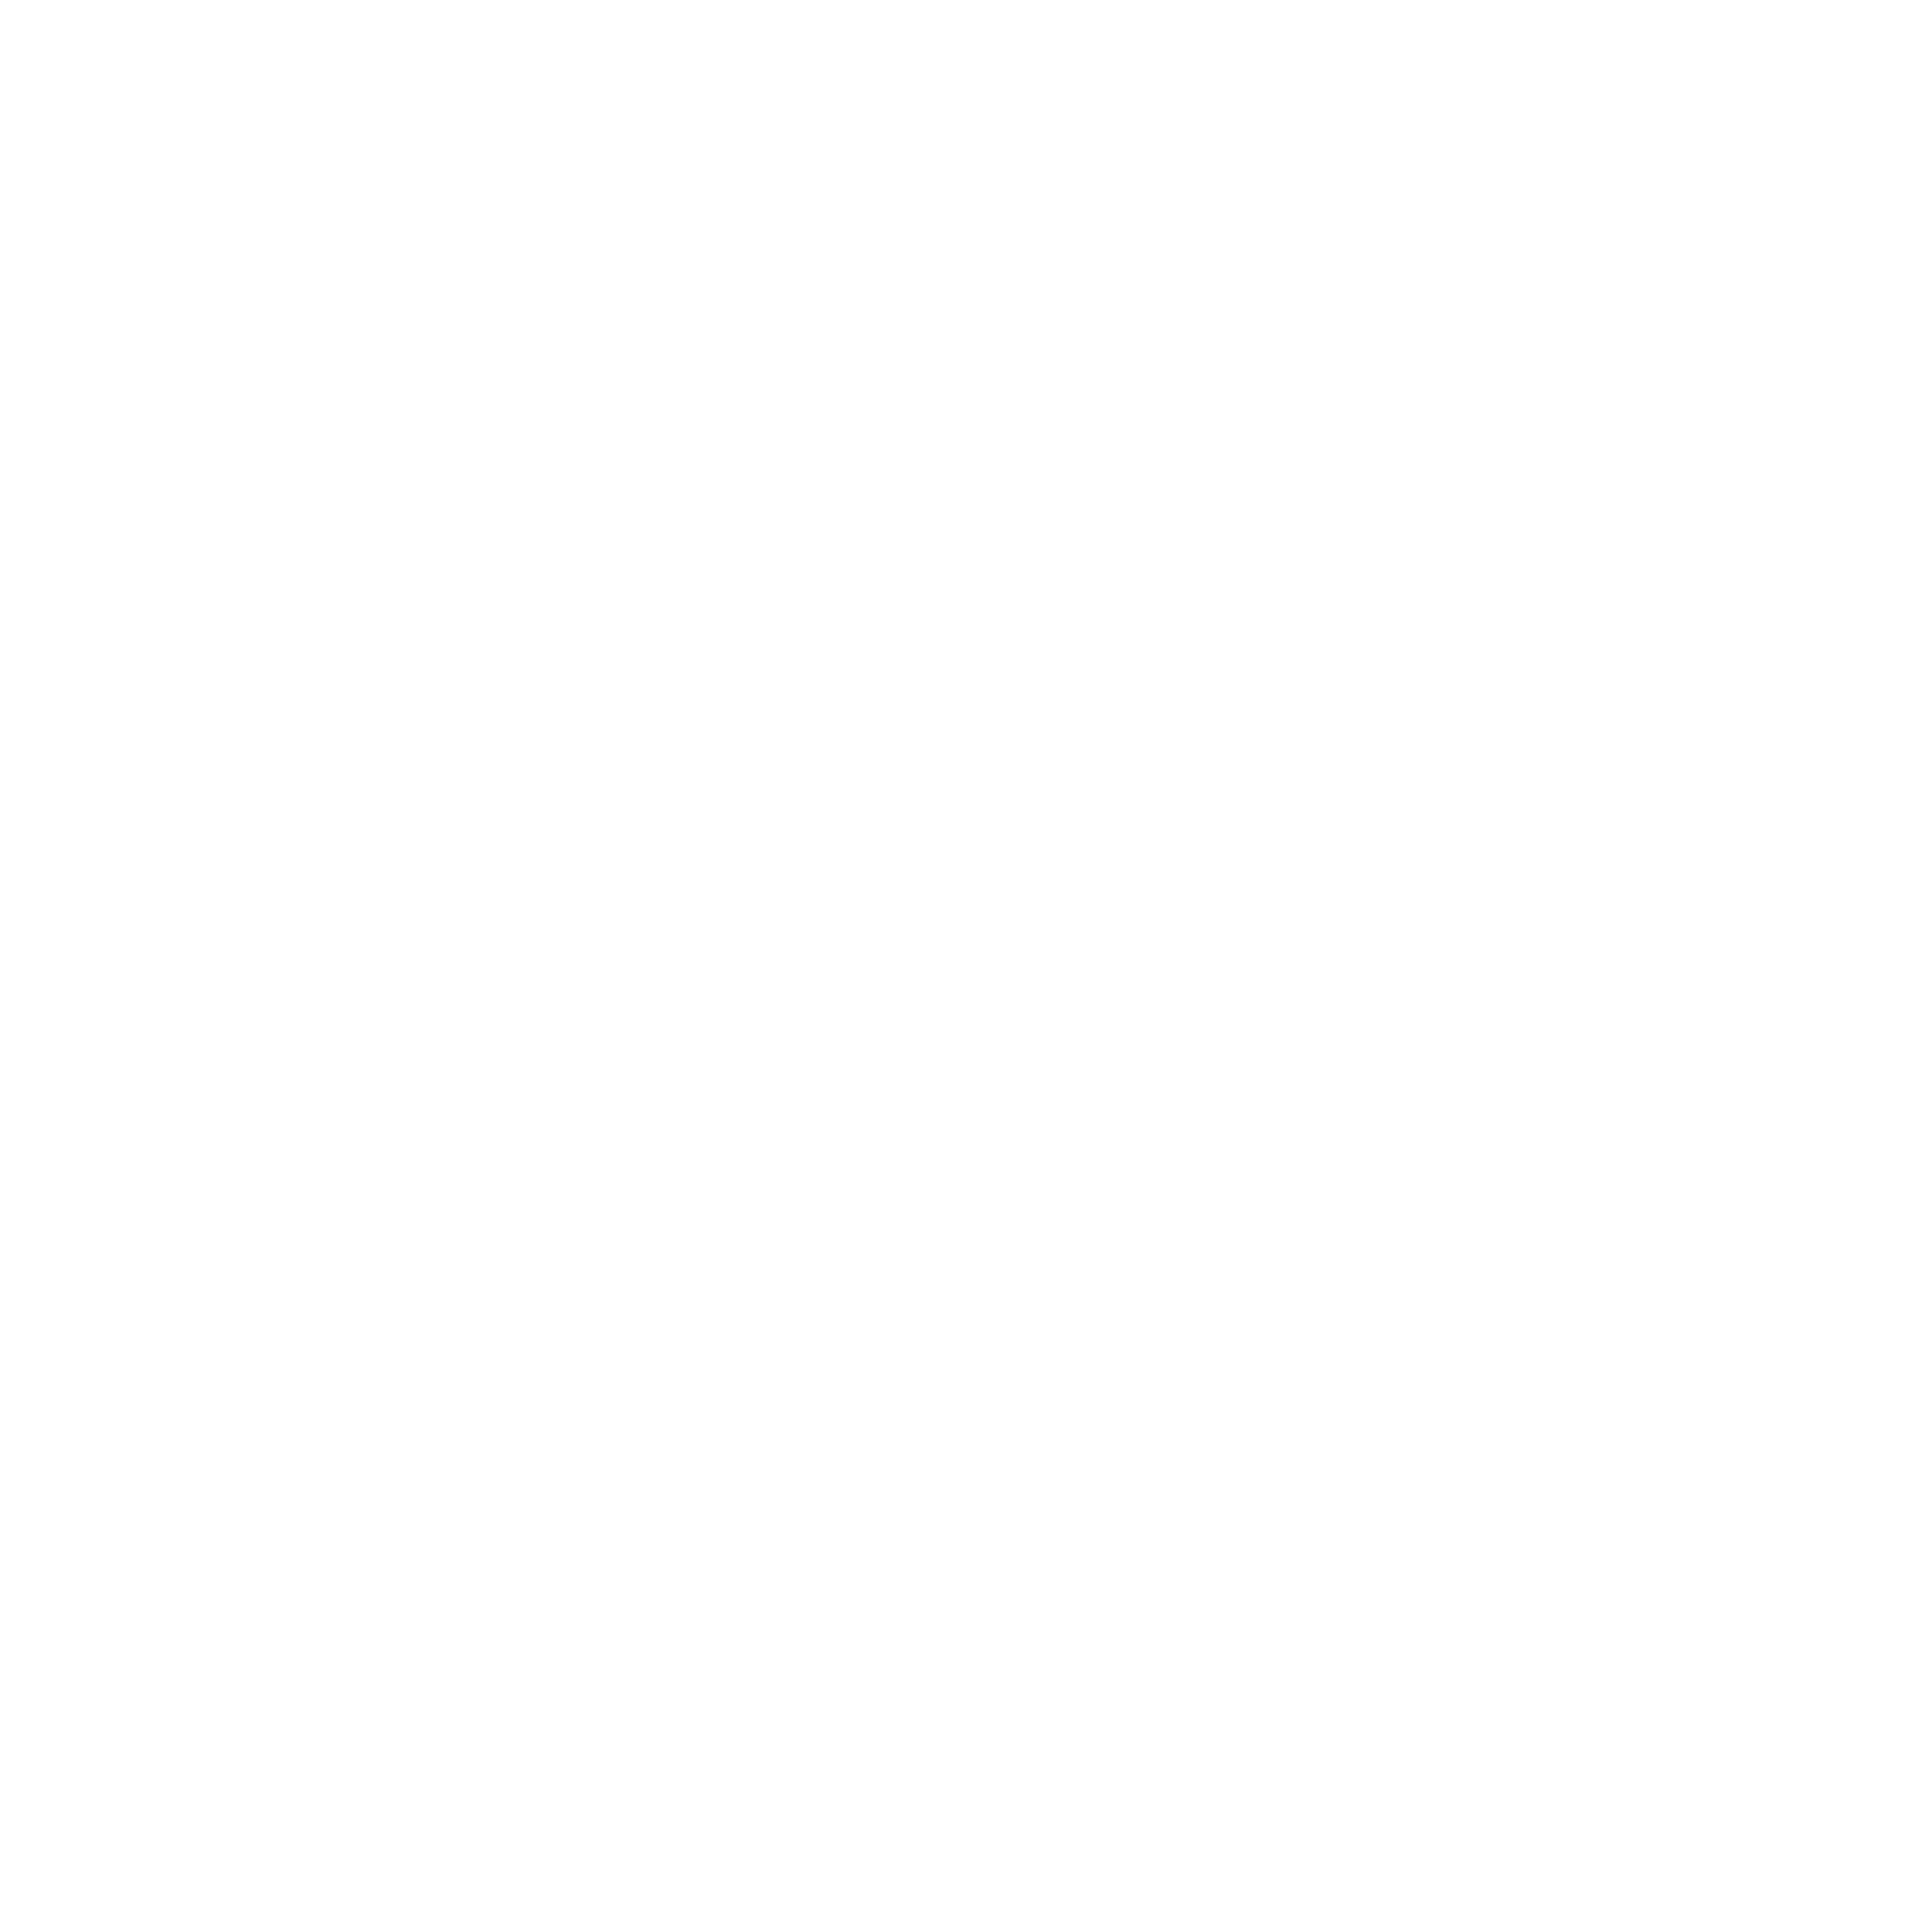 PARTTIMECOMMS-01.png